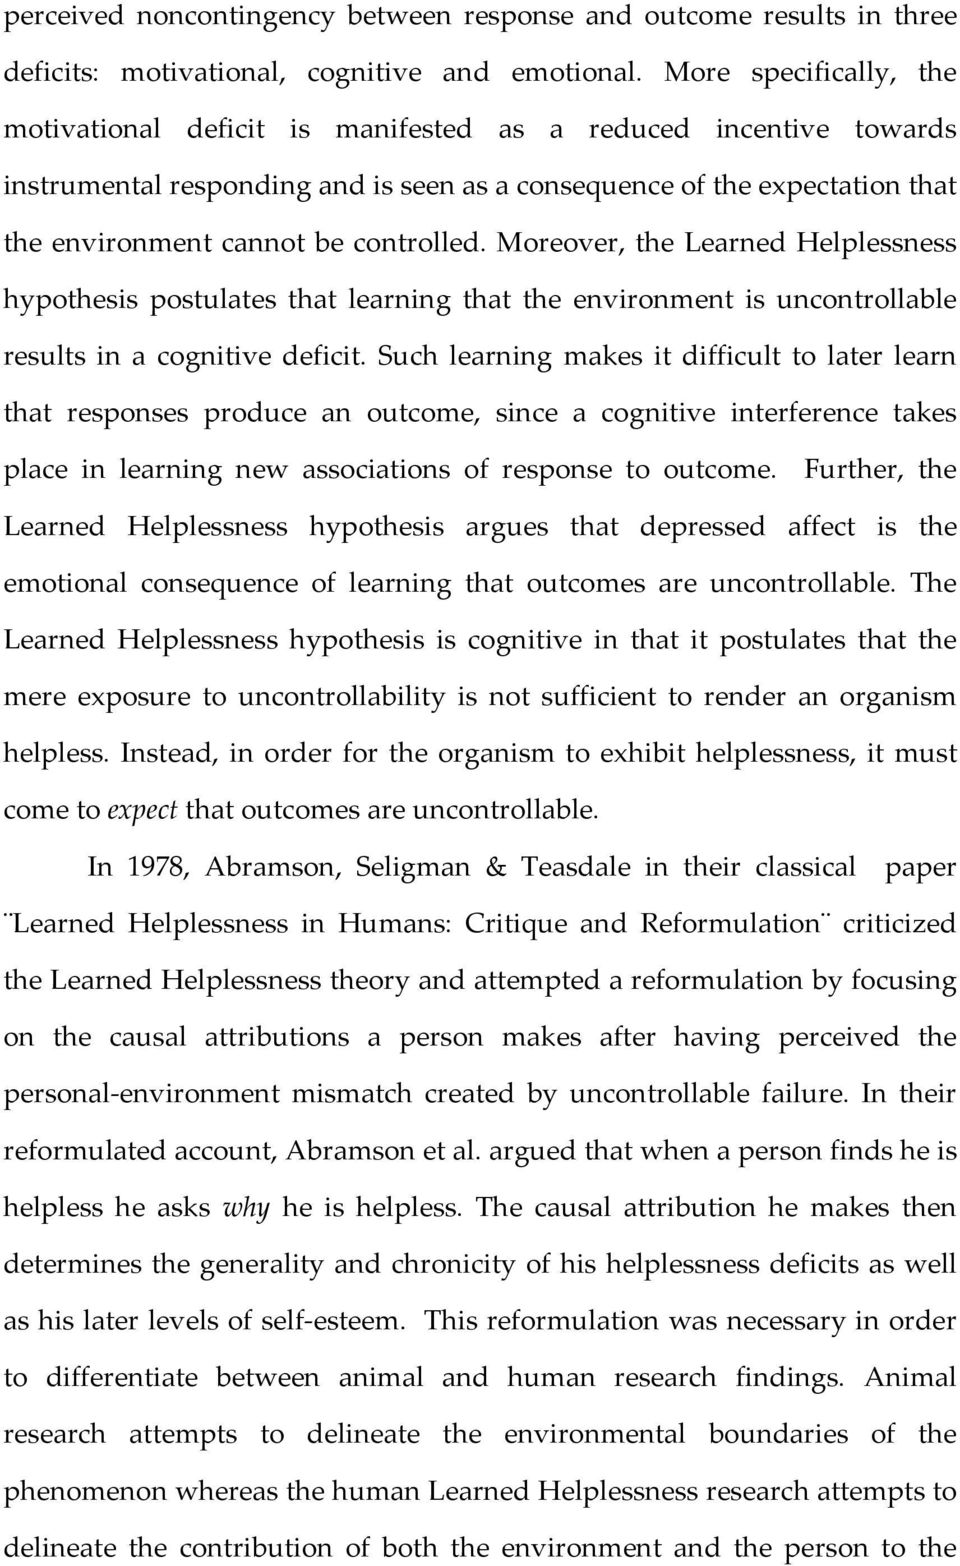 controlled. Moreover, the Learned Helplessness hypothesis postulates that learning that the environment is uncontrollable results in a cognitive deficit.